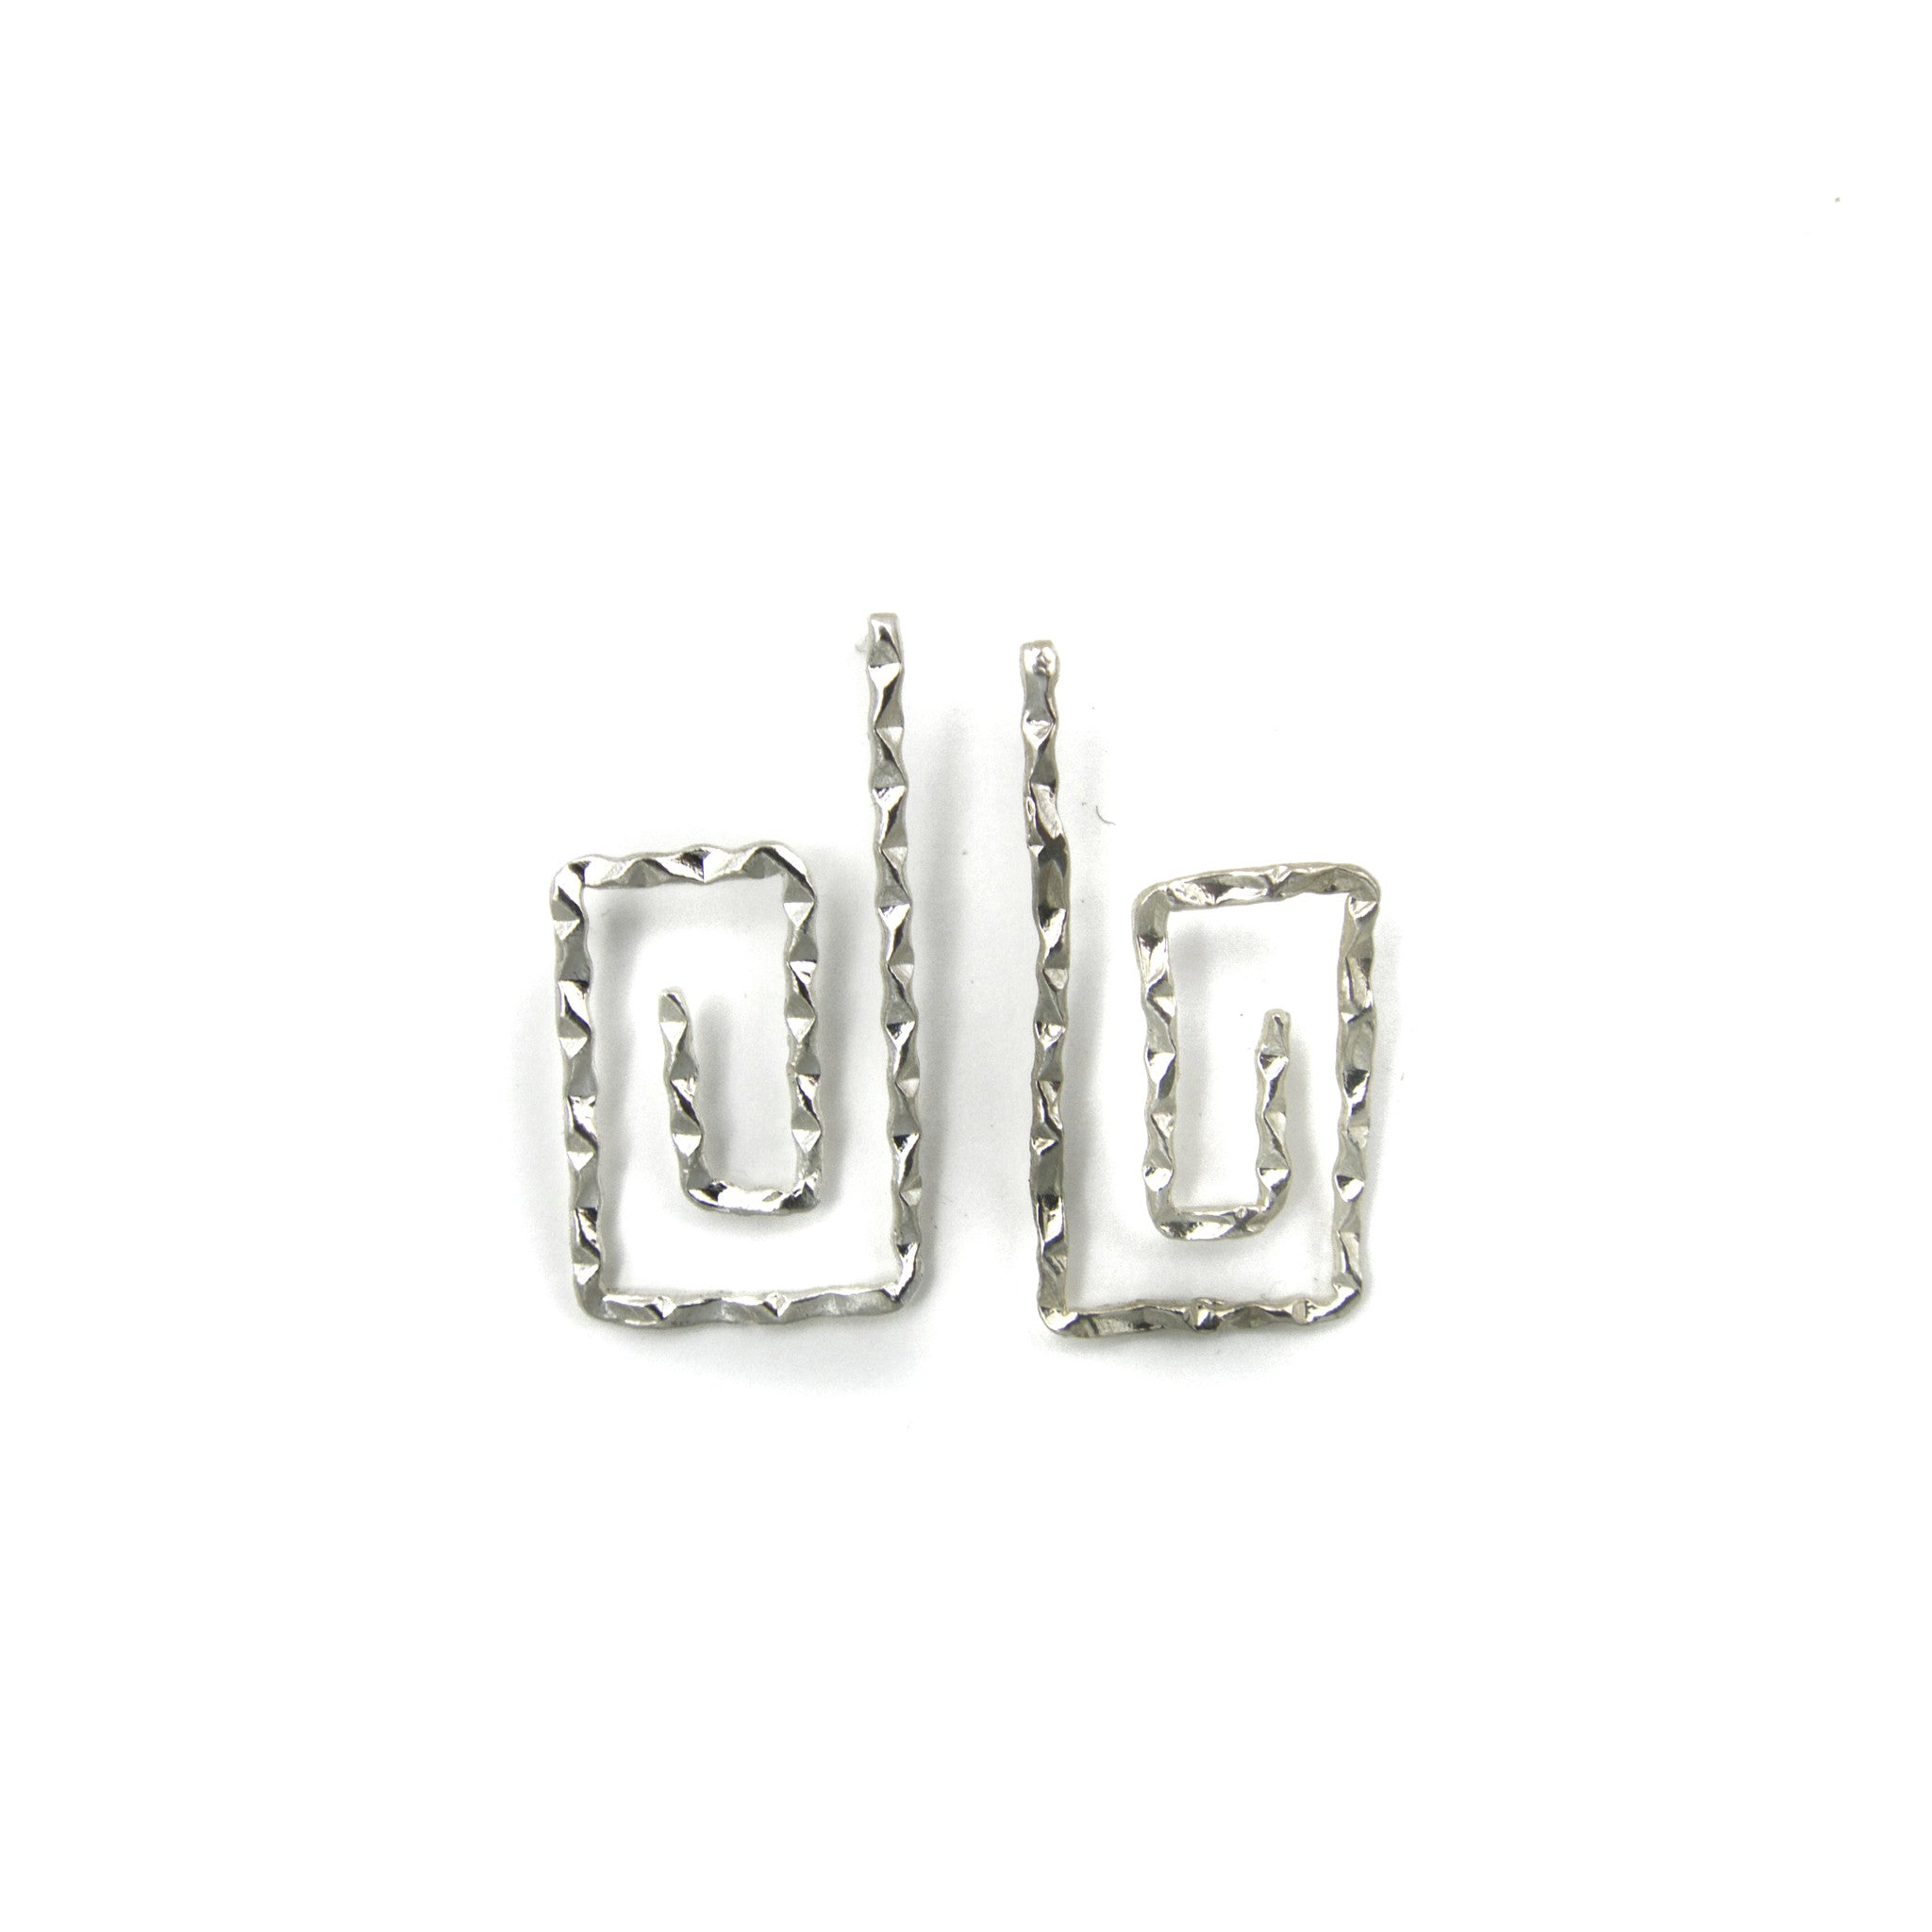 Patera C Earrings